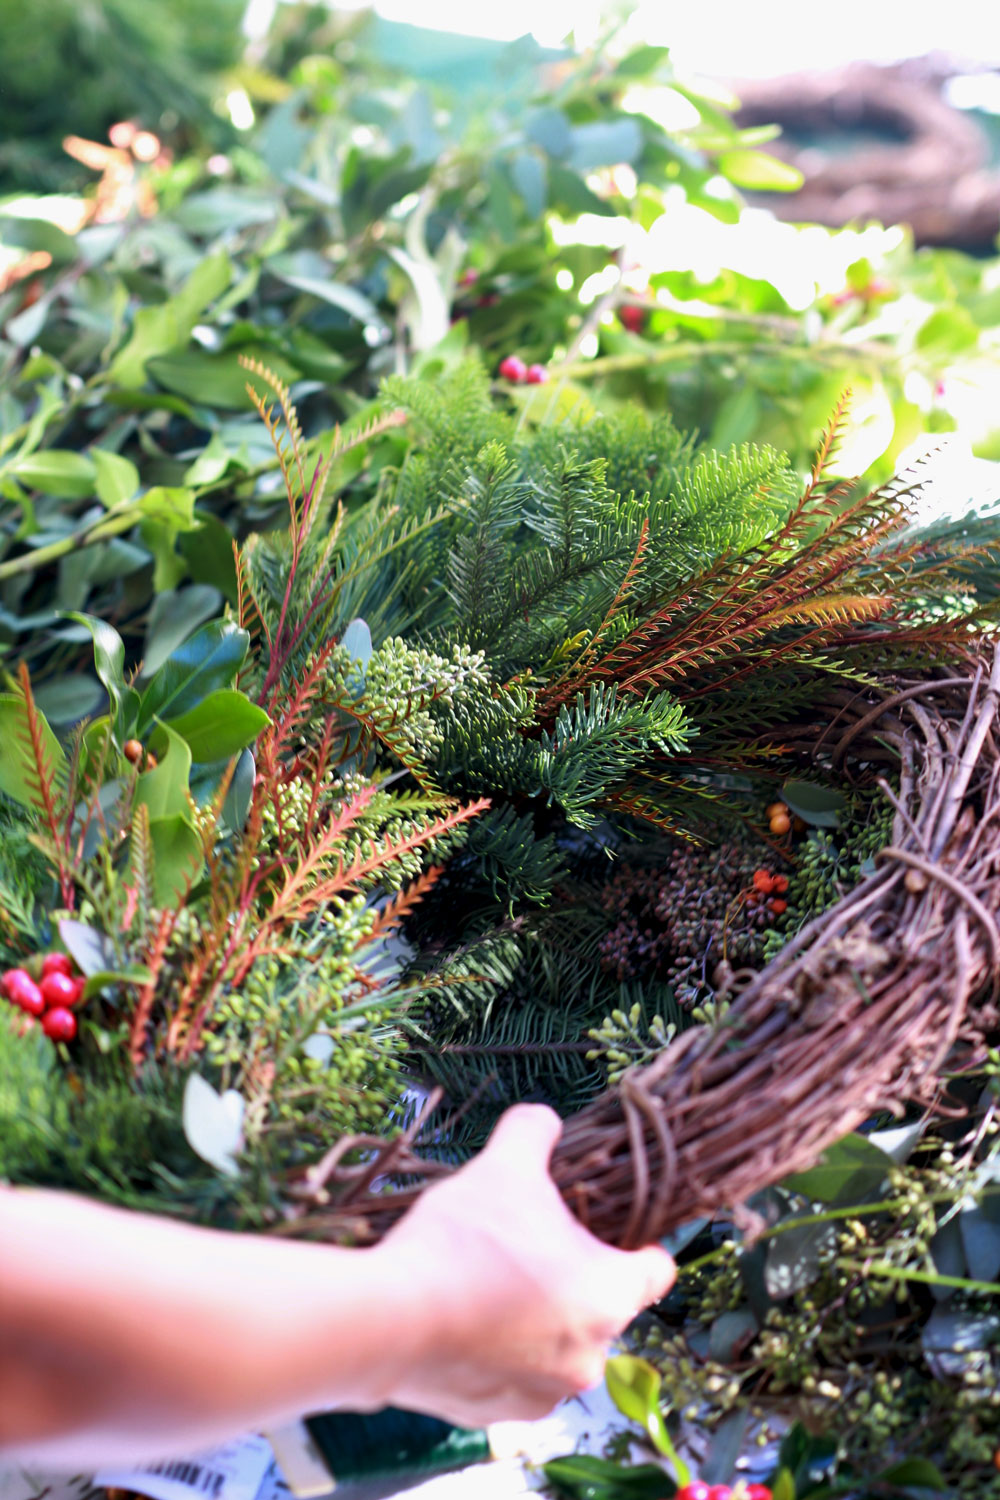 jestcafe.com-wreath-making16